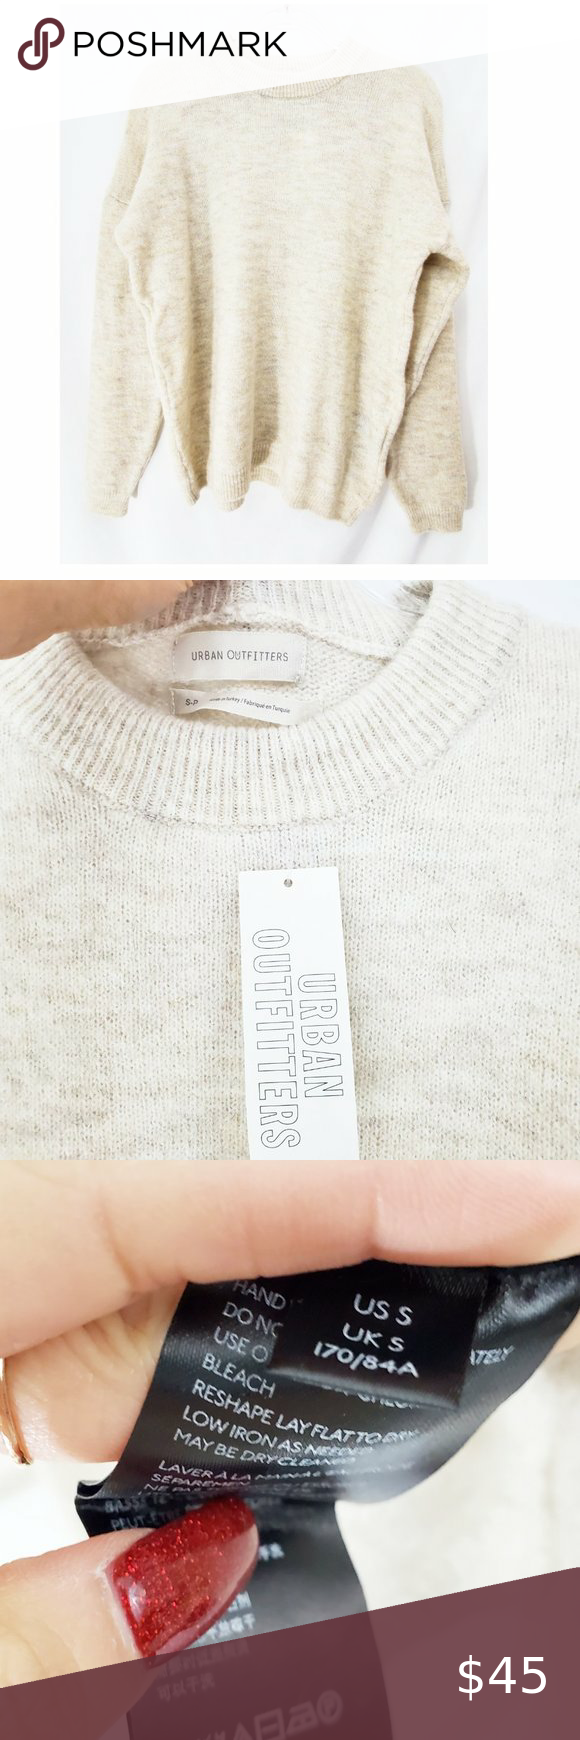 URBAN OUTFITTERS Beige Alpaca Wool Sweater NWT Slouchy, oversized sweater tunic from Urban Outfitters. Alpaca wool blend. Brand new with tags! Size Small.  23